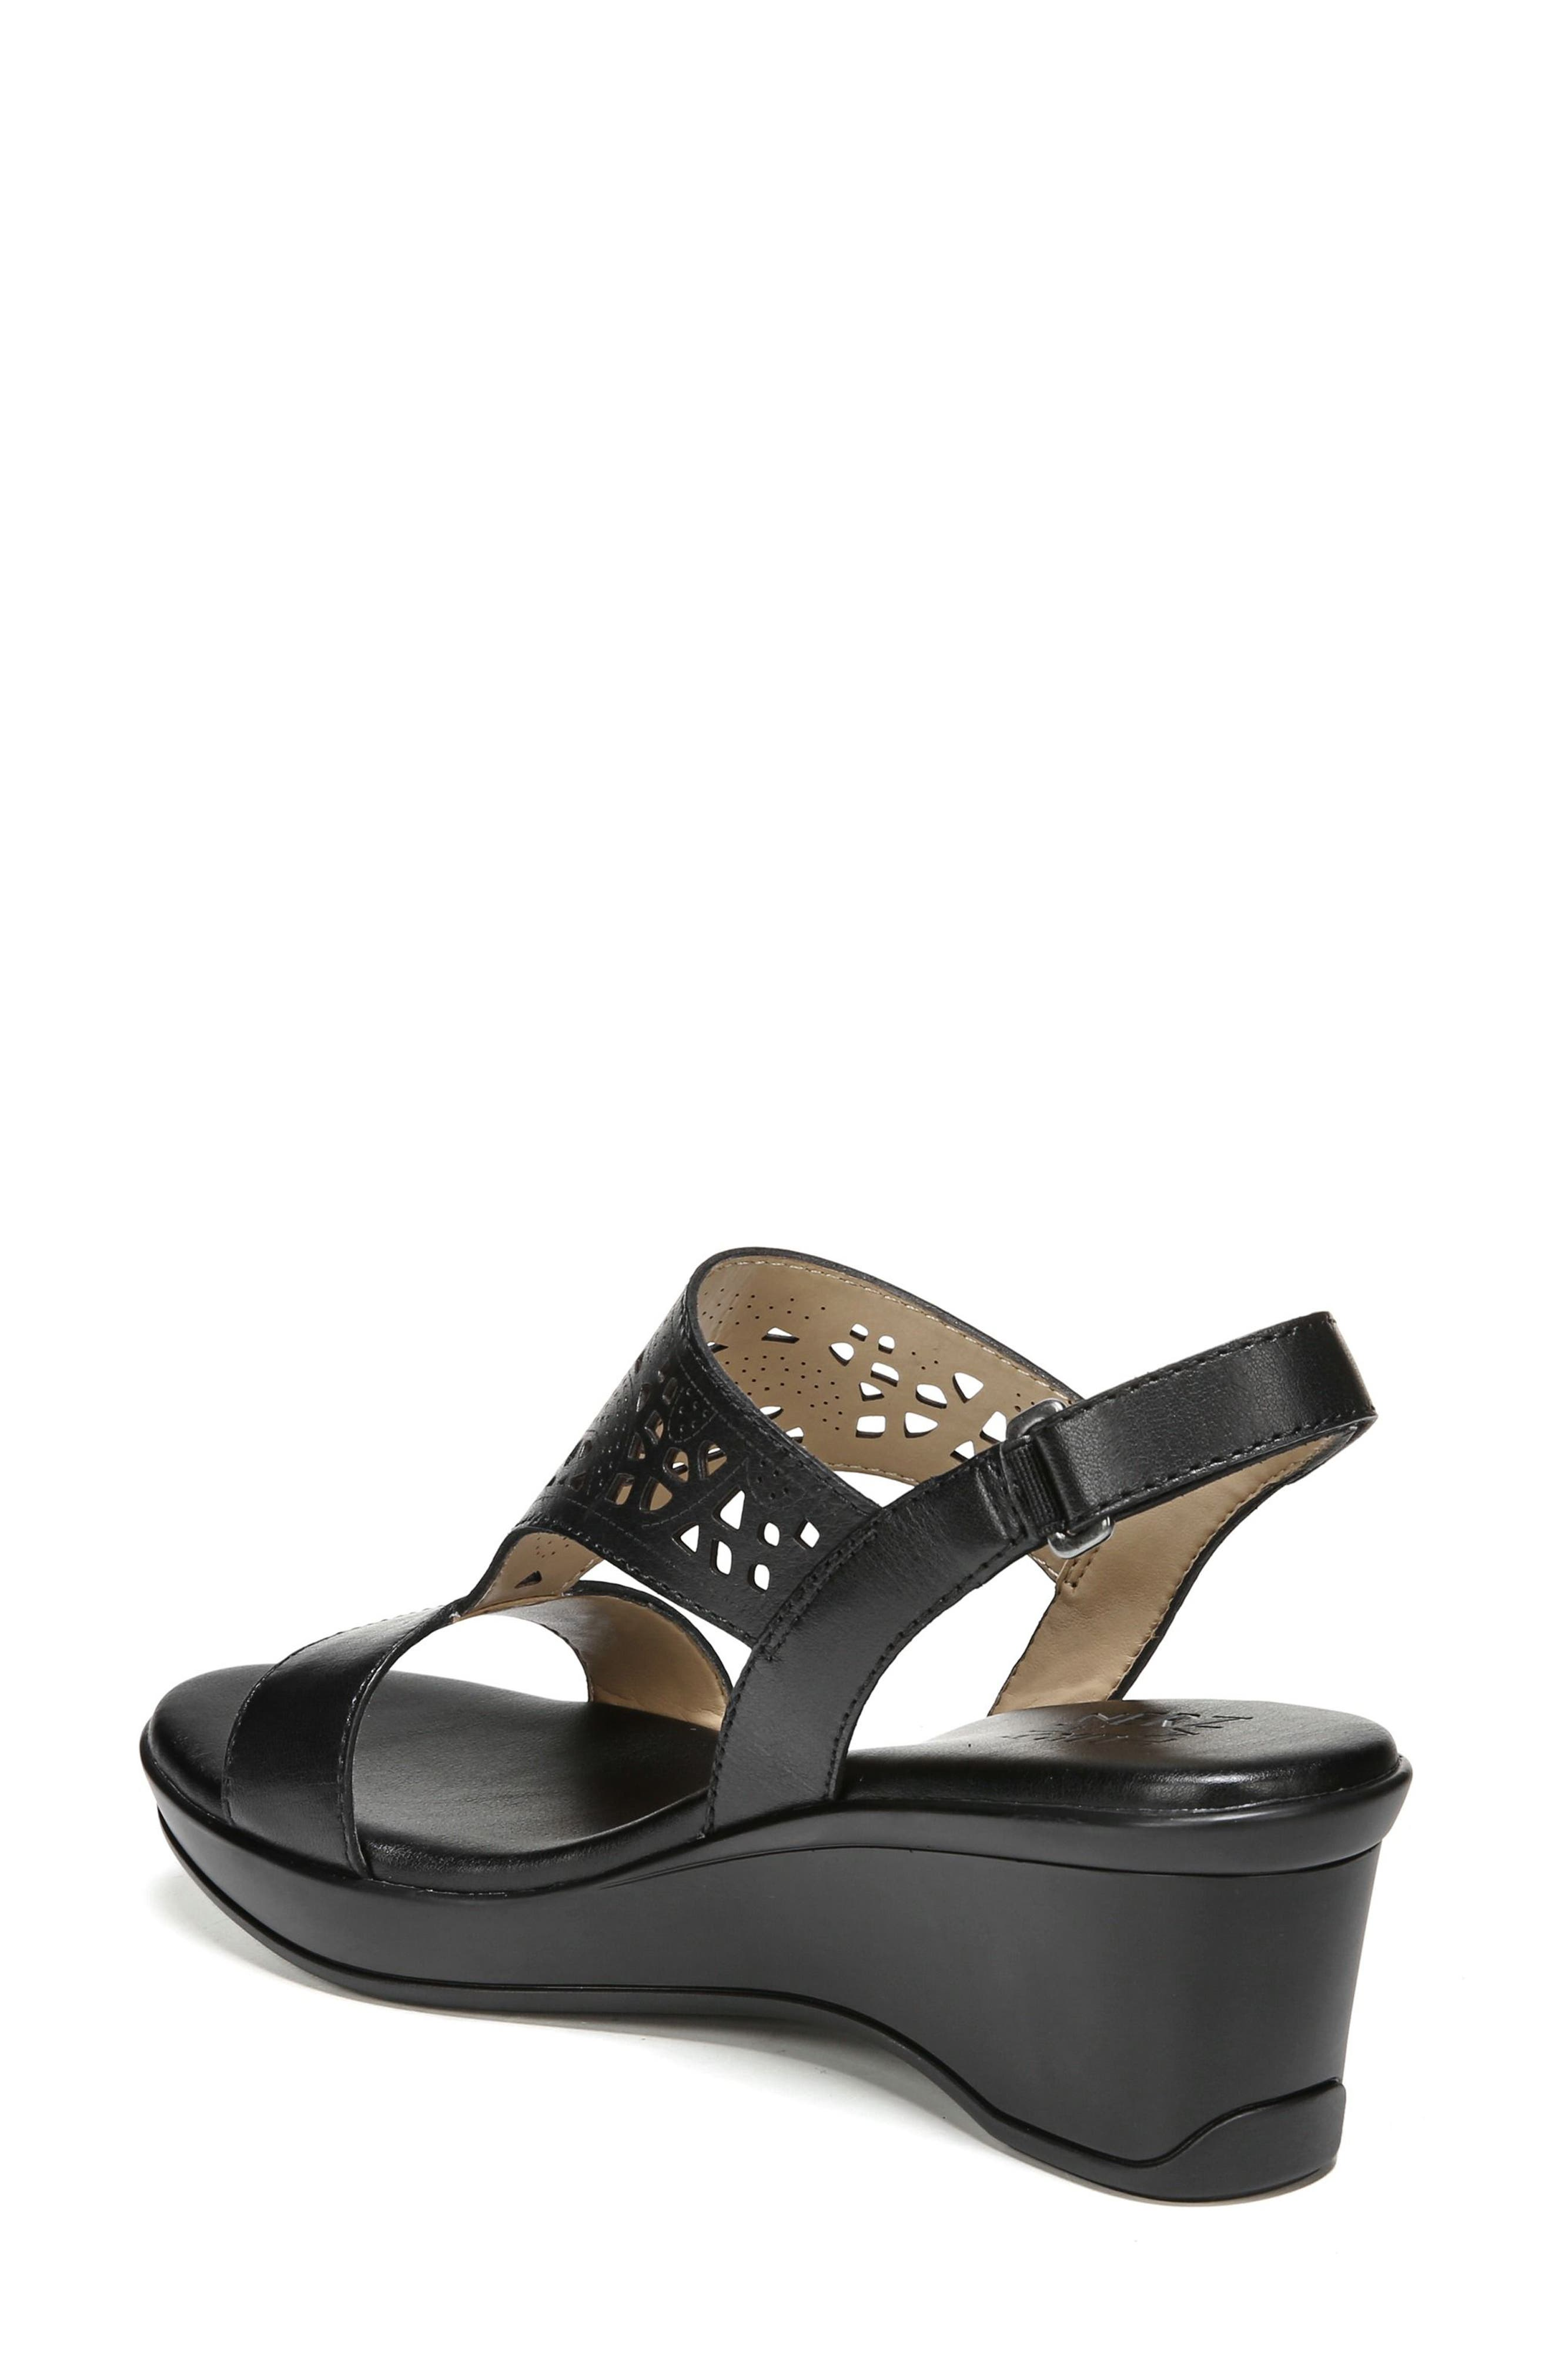 Veda Wedge Sandal,                             Alternate thumbnail 7, color,                             BLACK LEATHER